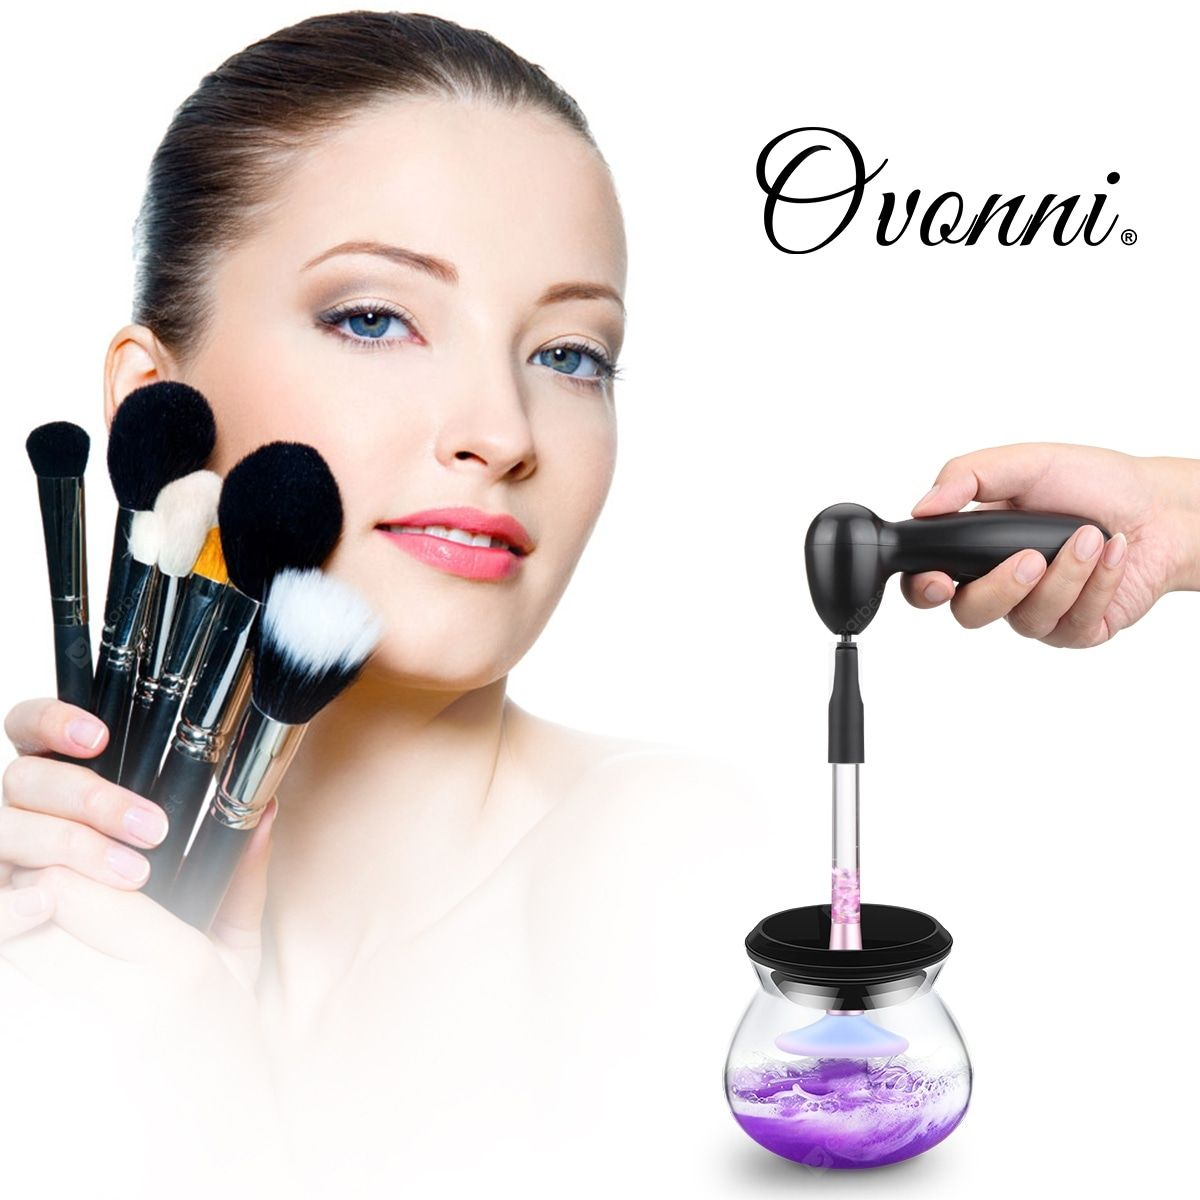 Ovonni Electric Makeup Brush Cleaner Wash and Dry Your